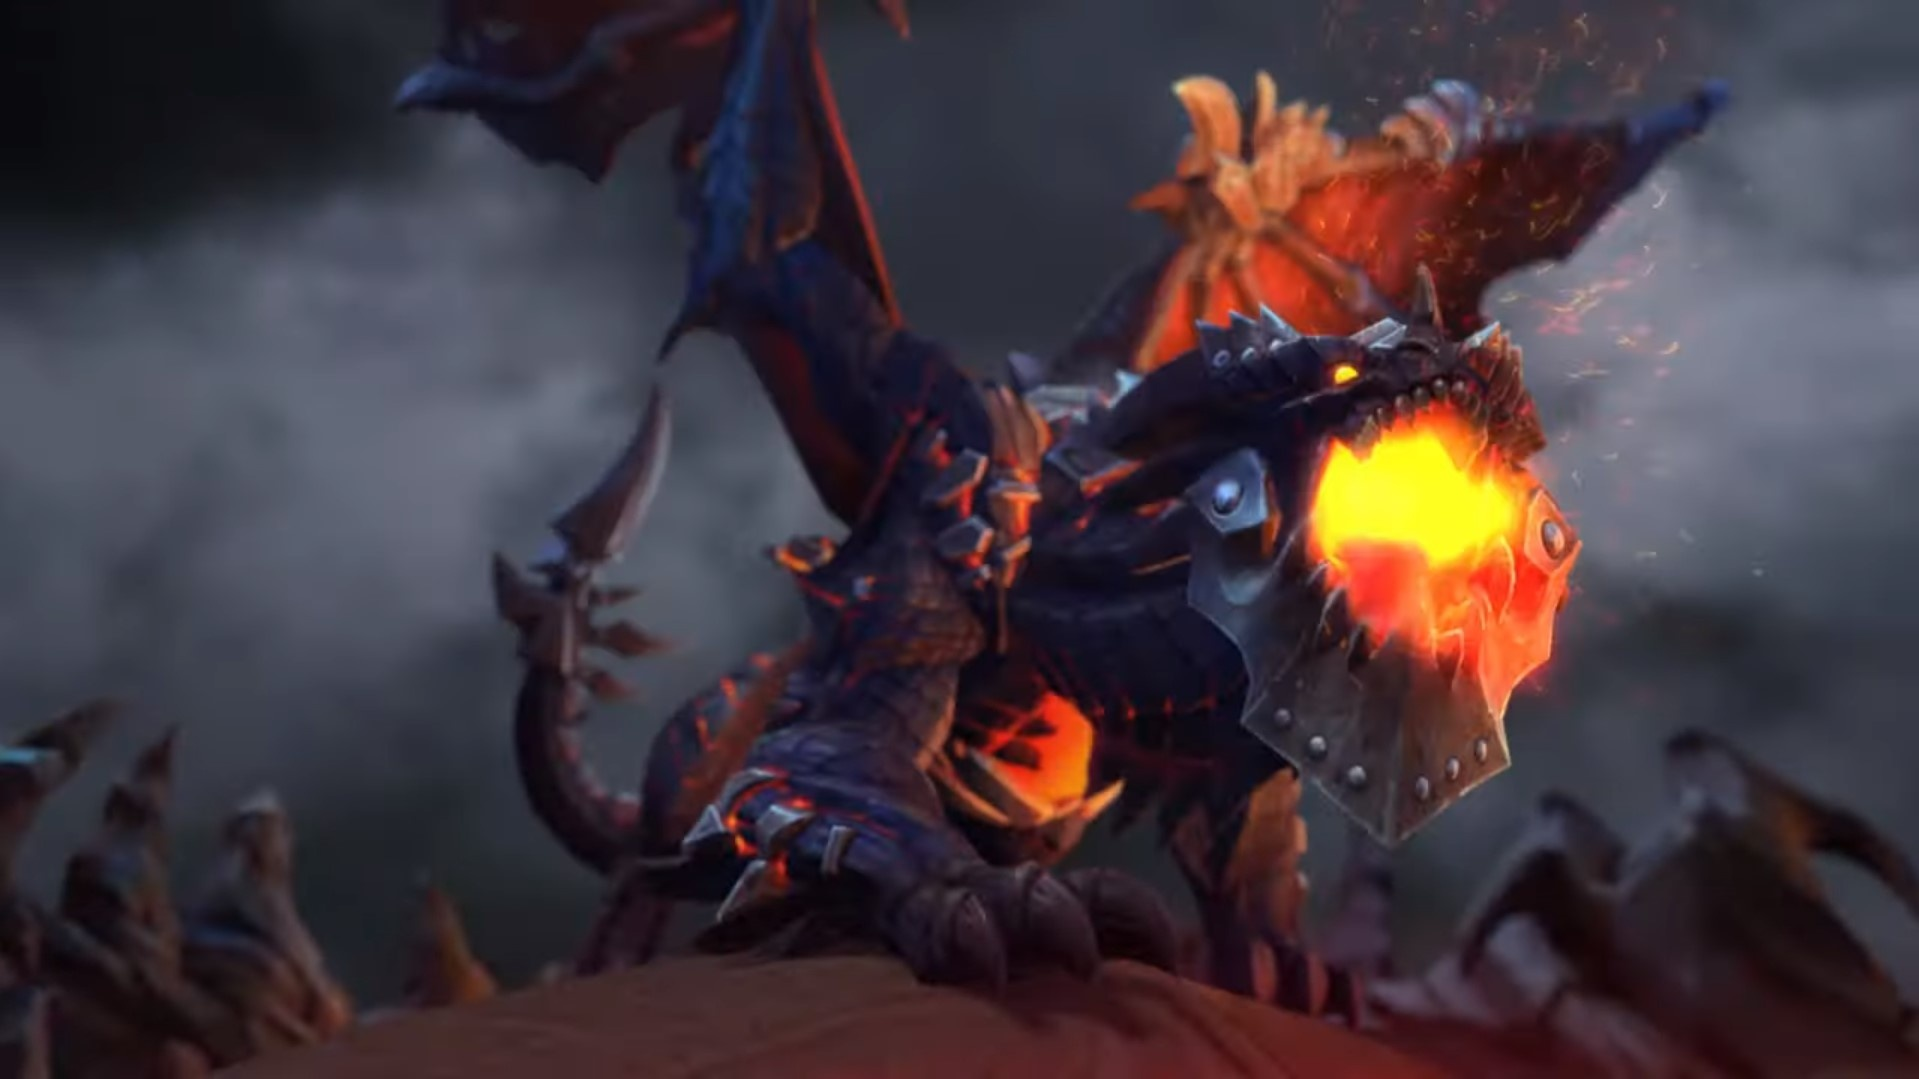 Deathwing Is The Next Heroes Of The Storm Hero Wowhead News It looks like deathwing first look stream event was momentarily shown on hots twitch channel before it was quickly taken down. heroes of the storm hero wowhead